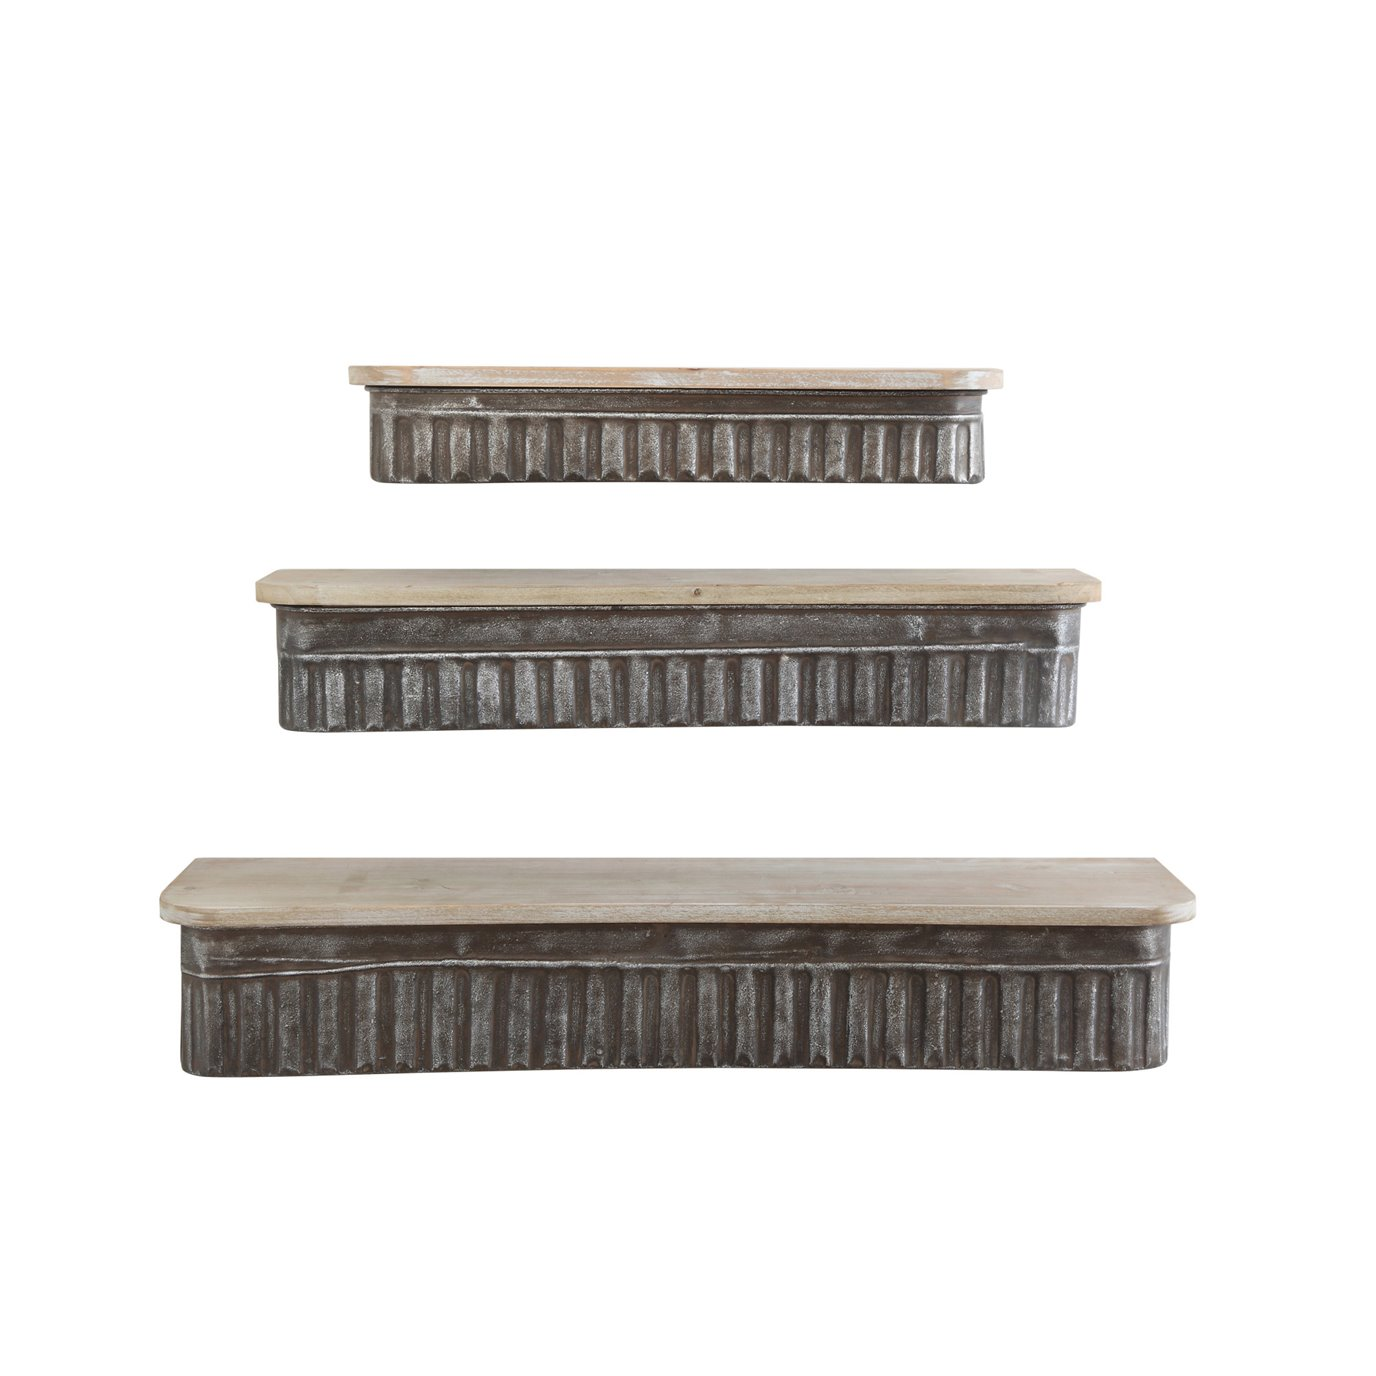 Metal & Wood Wall Shelves (Set of 3 Sizes)